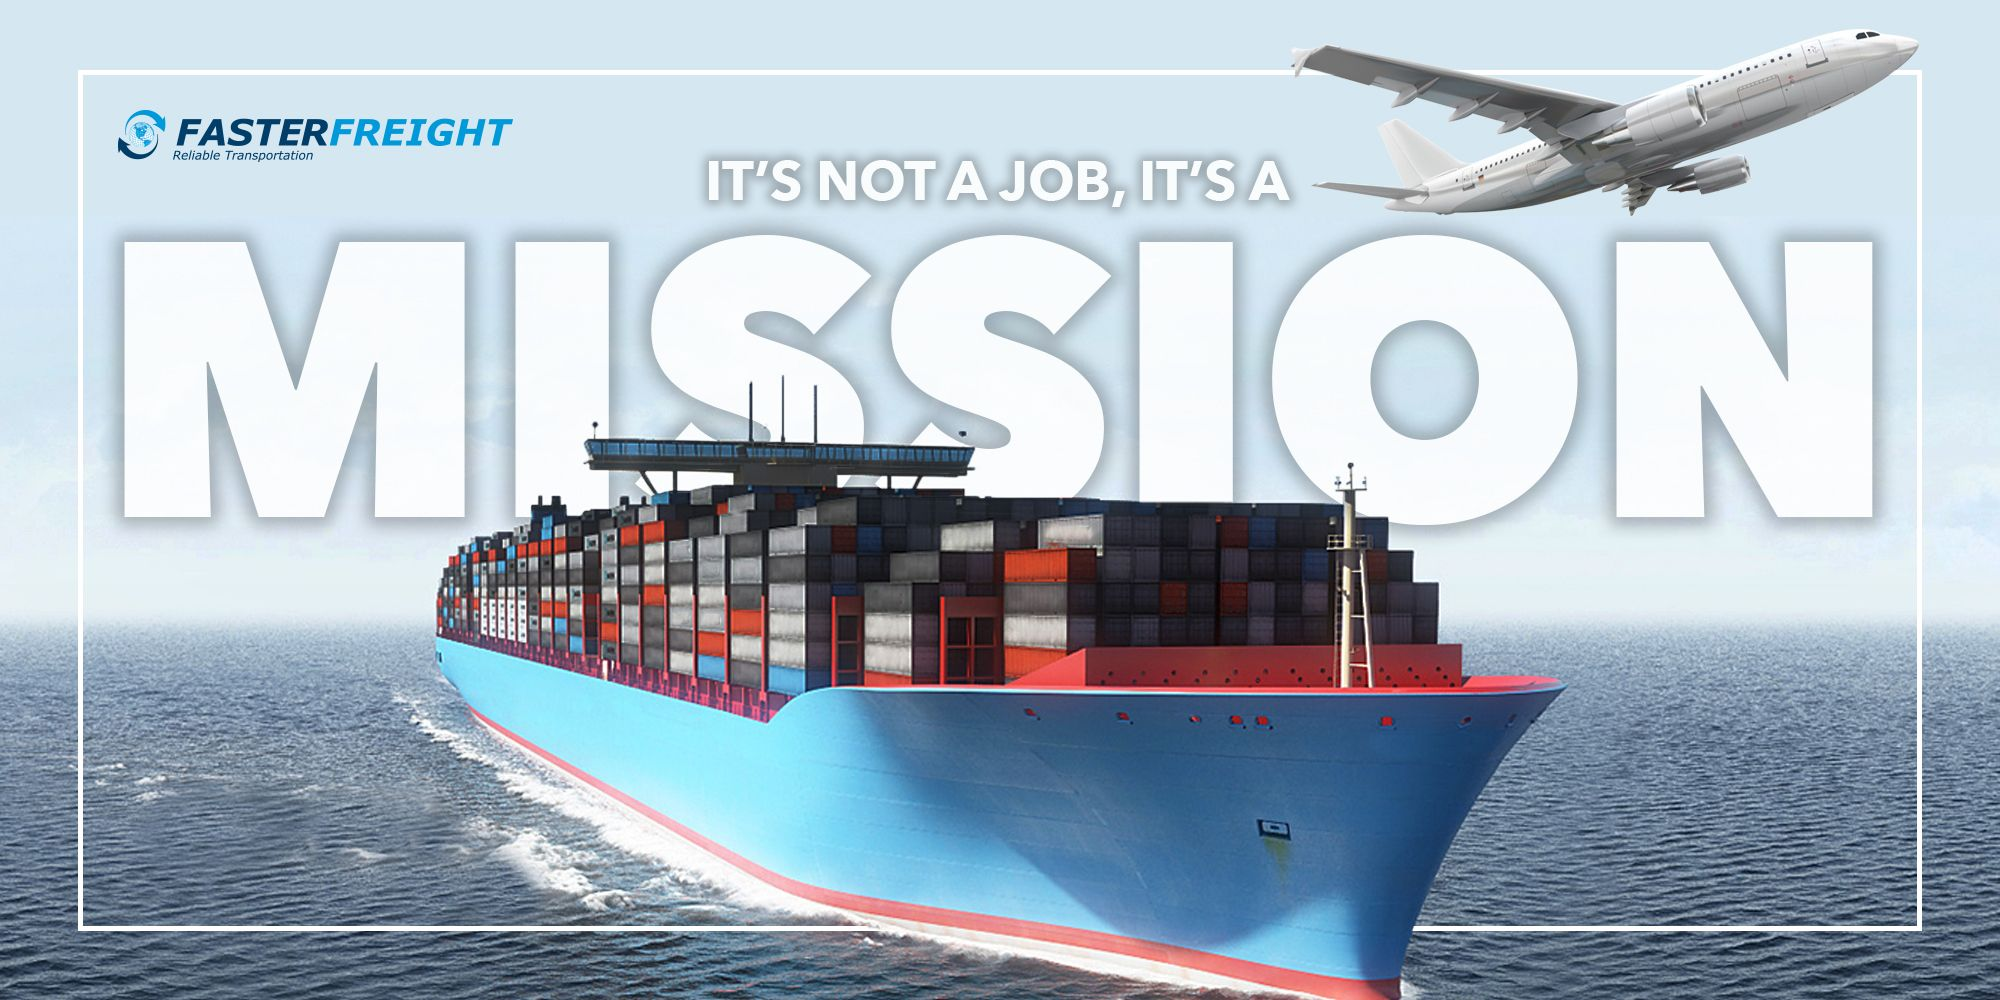 Freight Shipping Quote It's Not A Job It's A Missionget Online Quote At Www .